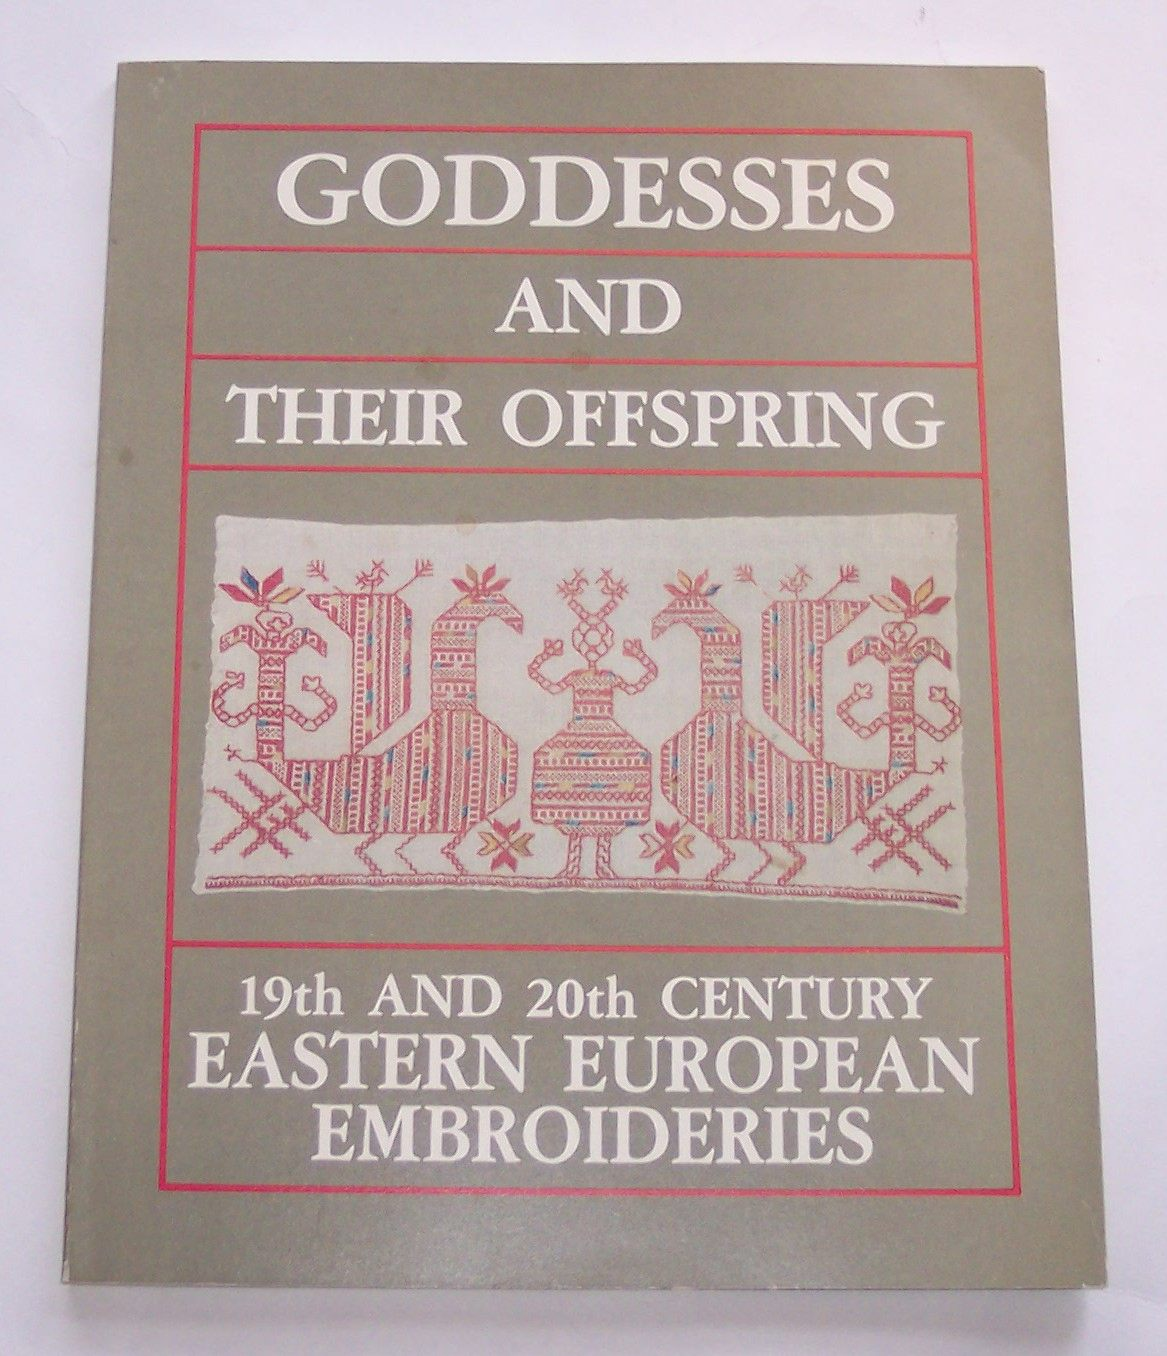 Image for Goddesses and Their Offspring 19th and 20th Century Eastern European Embroideries